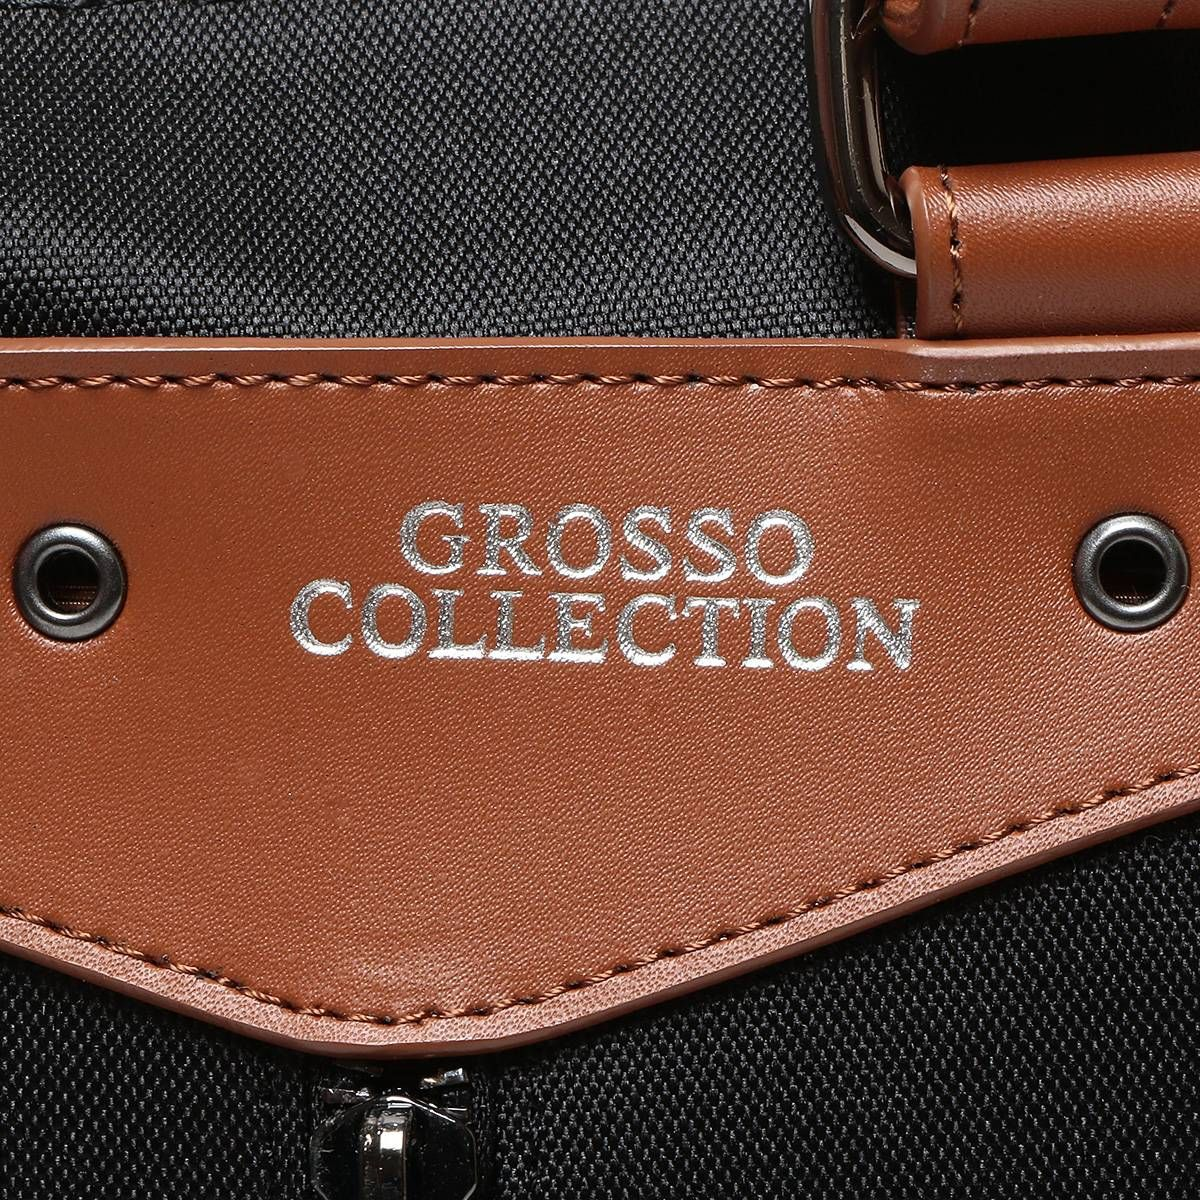 GROSSO COLLECTION (グロッソコレクション) 定期ホルダー付き 多機能 トートバッグ